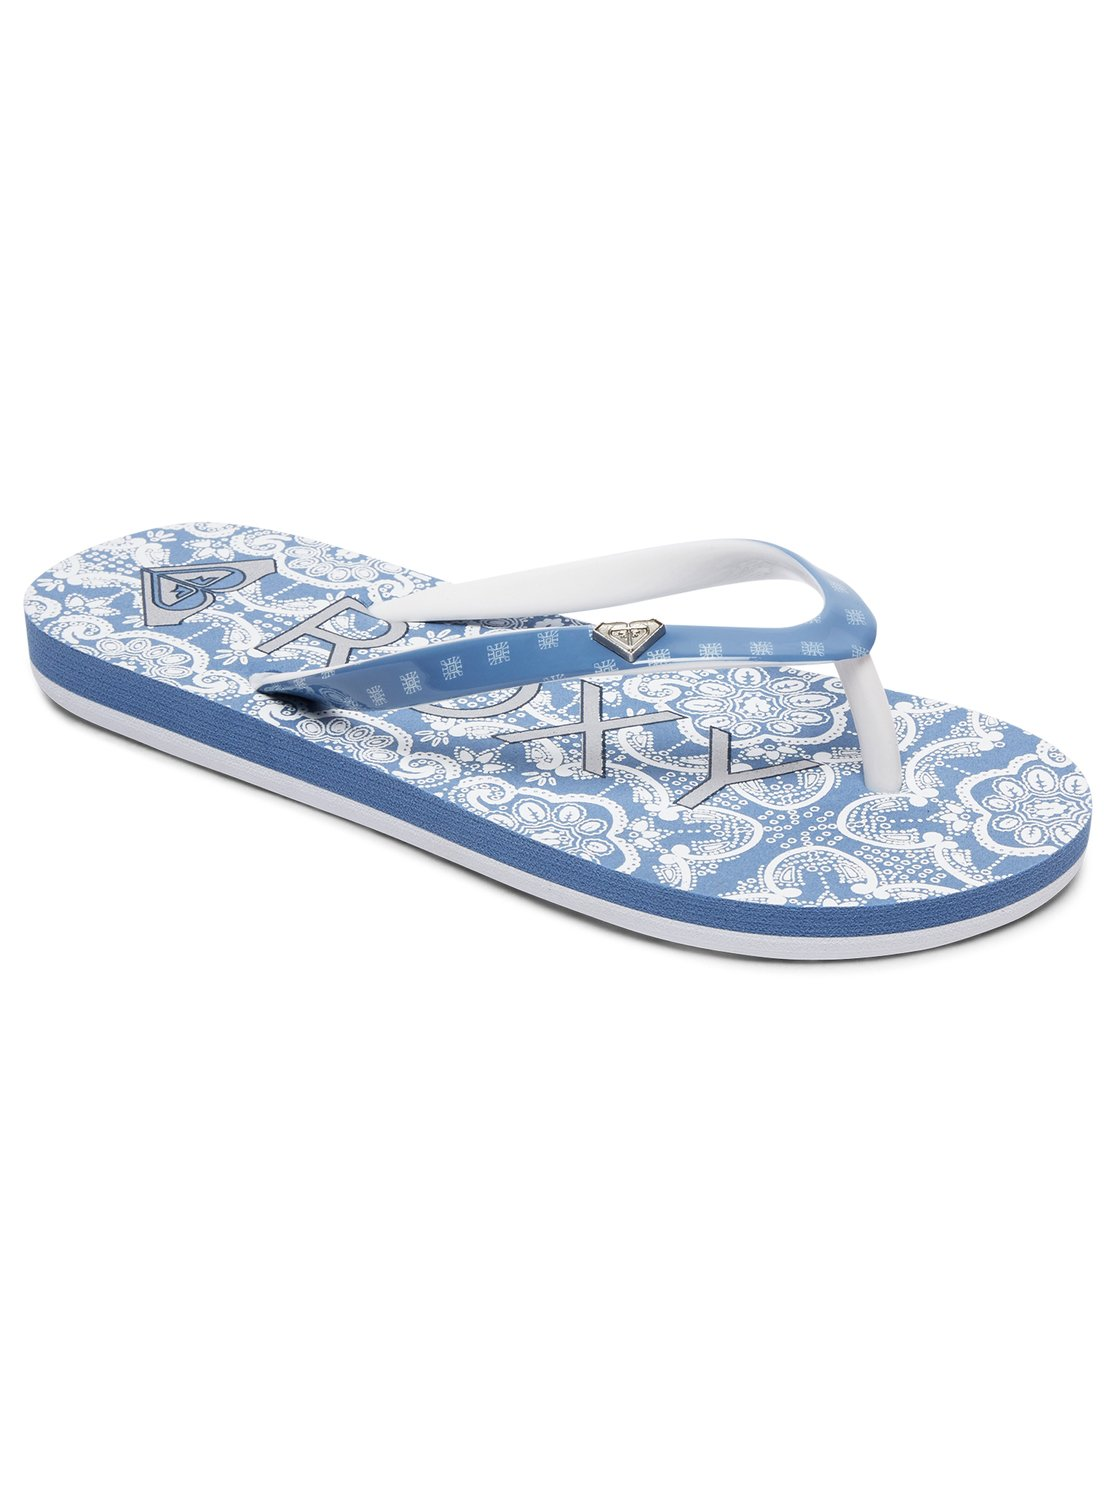 6e37eb445252 0 Pebbles VI - Flip-Flops for Girls Blue ARGL100182 Roxy